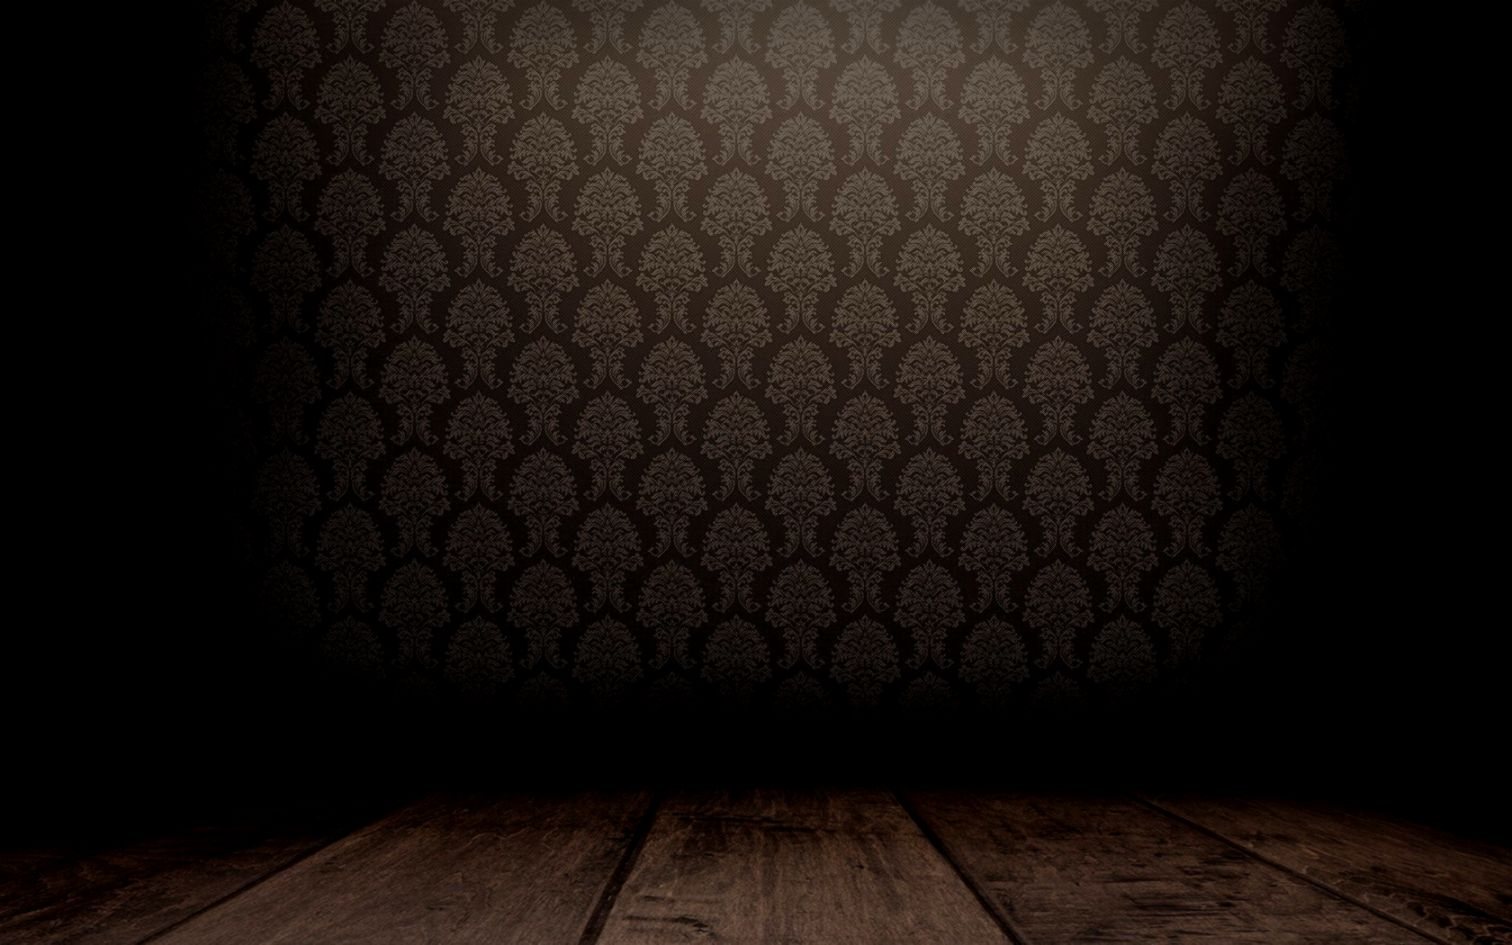 Wood Room Texture Iphone 5 Wallpaper Wallpapers Titan